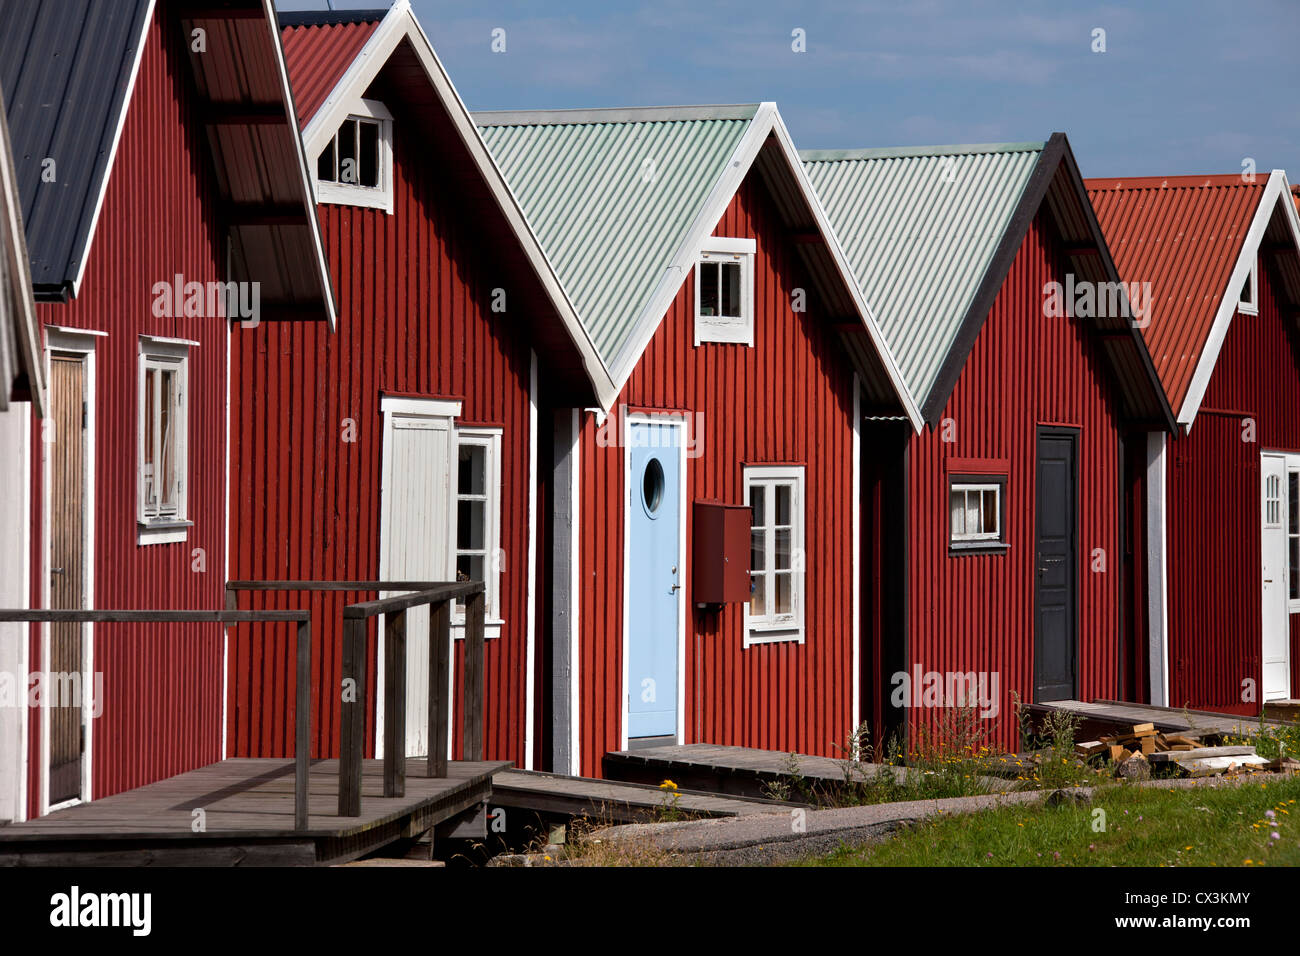 Red wooden boat huts in the harbour at Hamburgsund, Bohuslän, Sweden Stock Photo